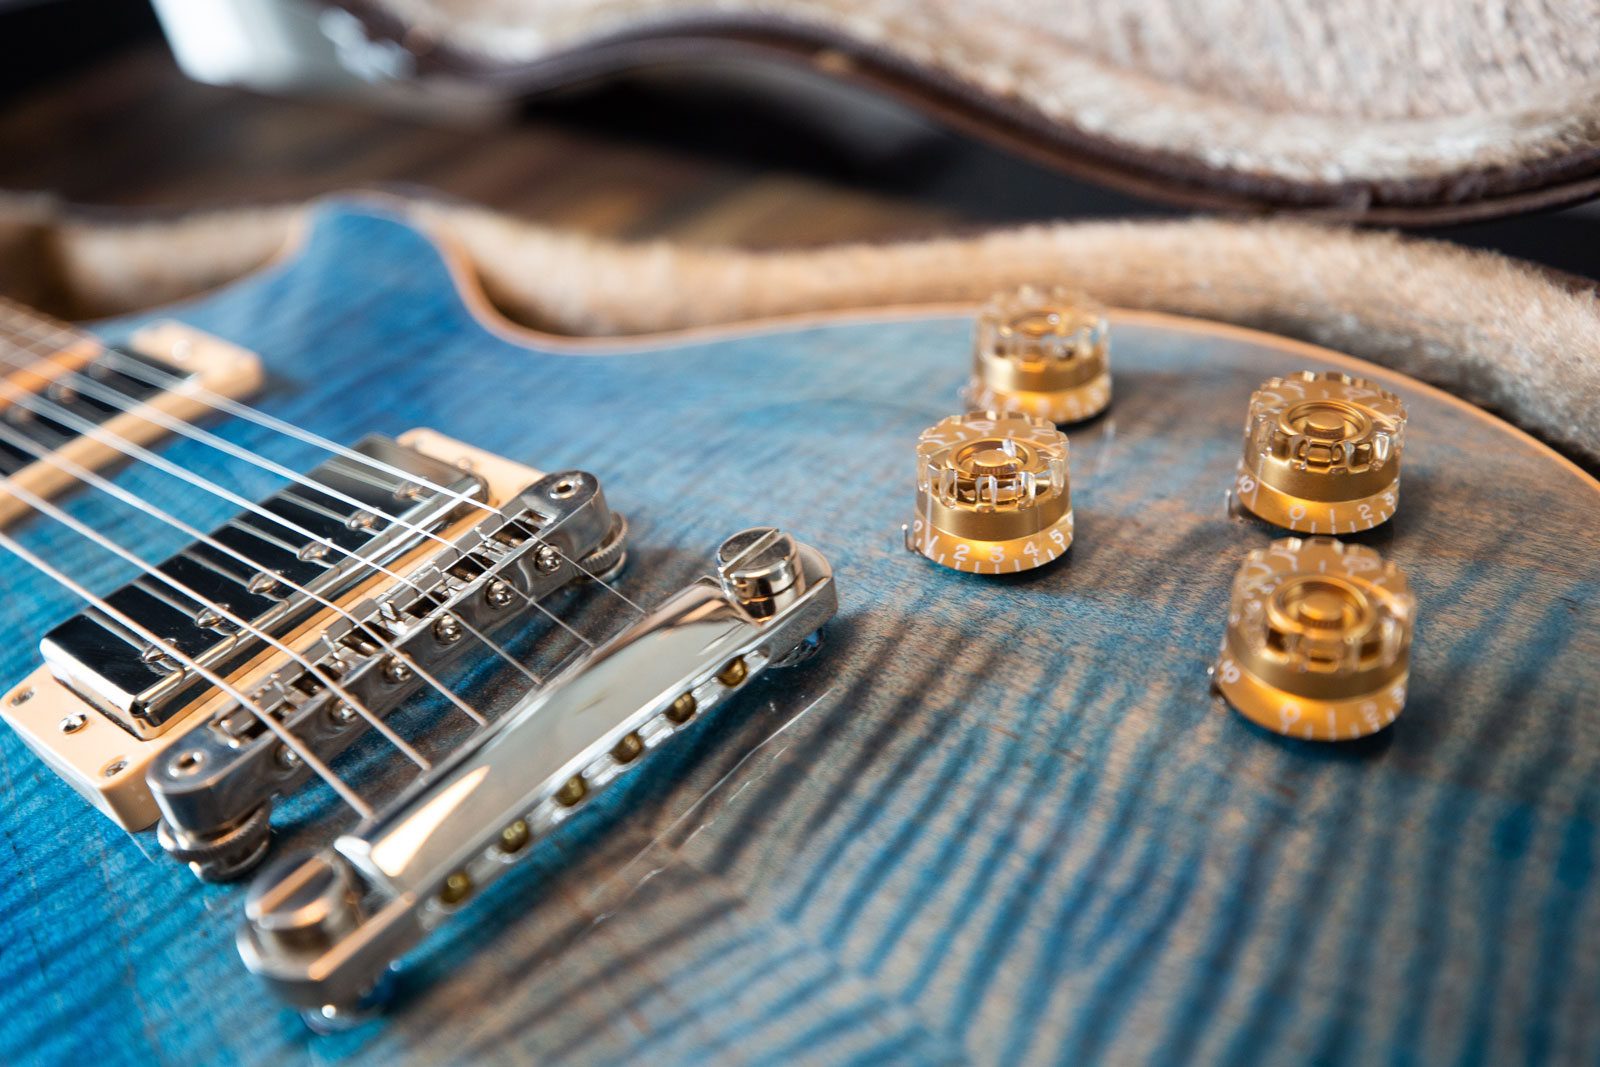 Guitar | A Beginner's Guide On How To Tune An Electric Guitar